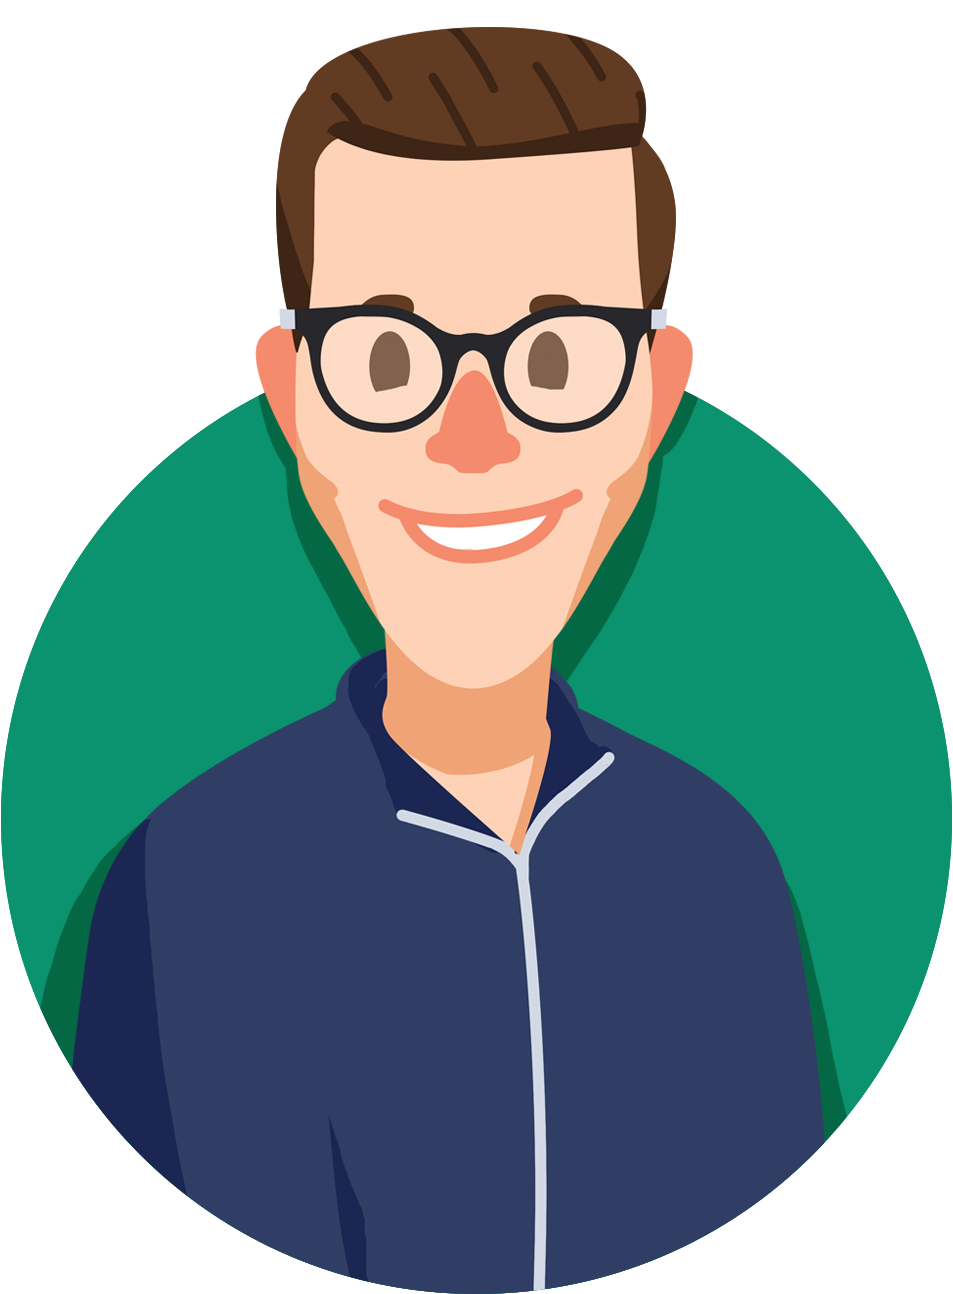 David Crane - Senior Product ManagerExperienced product manager previously of Focal Healthcare. David has his masters in Neuroscience from McGill and was a Research Engineer at Sunnybrook Health Science Centre.